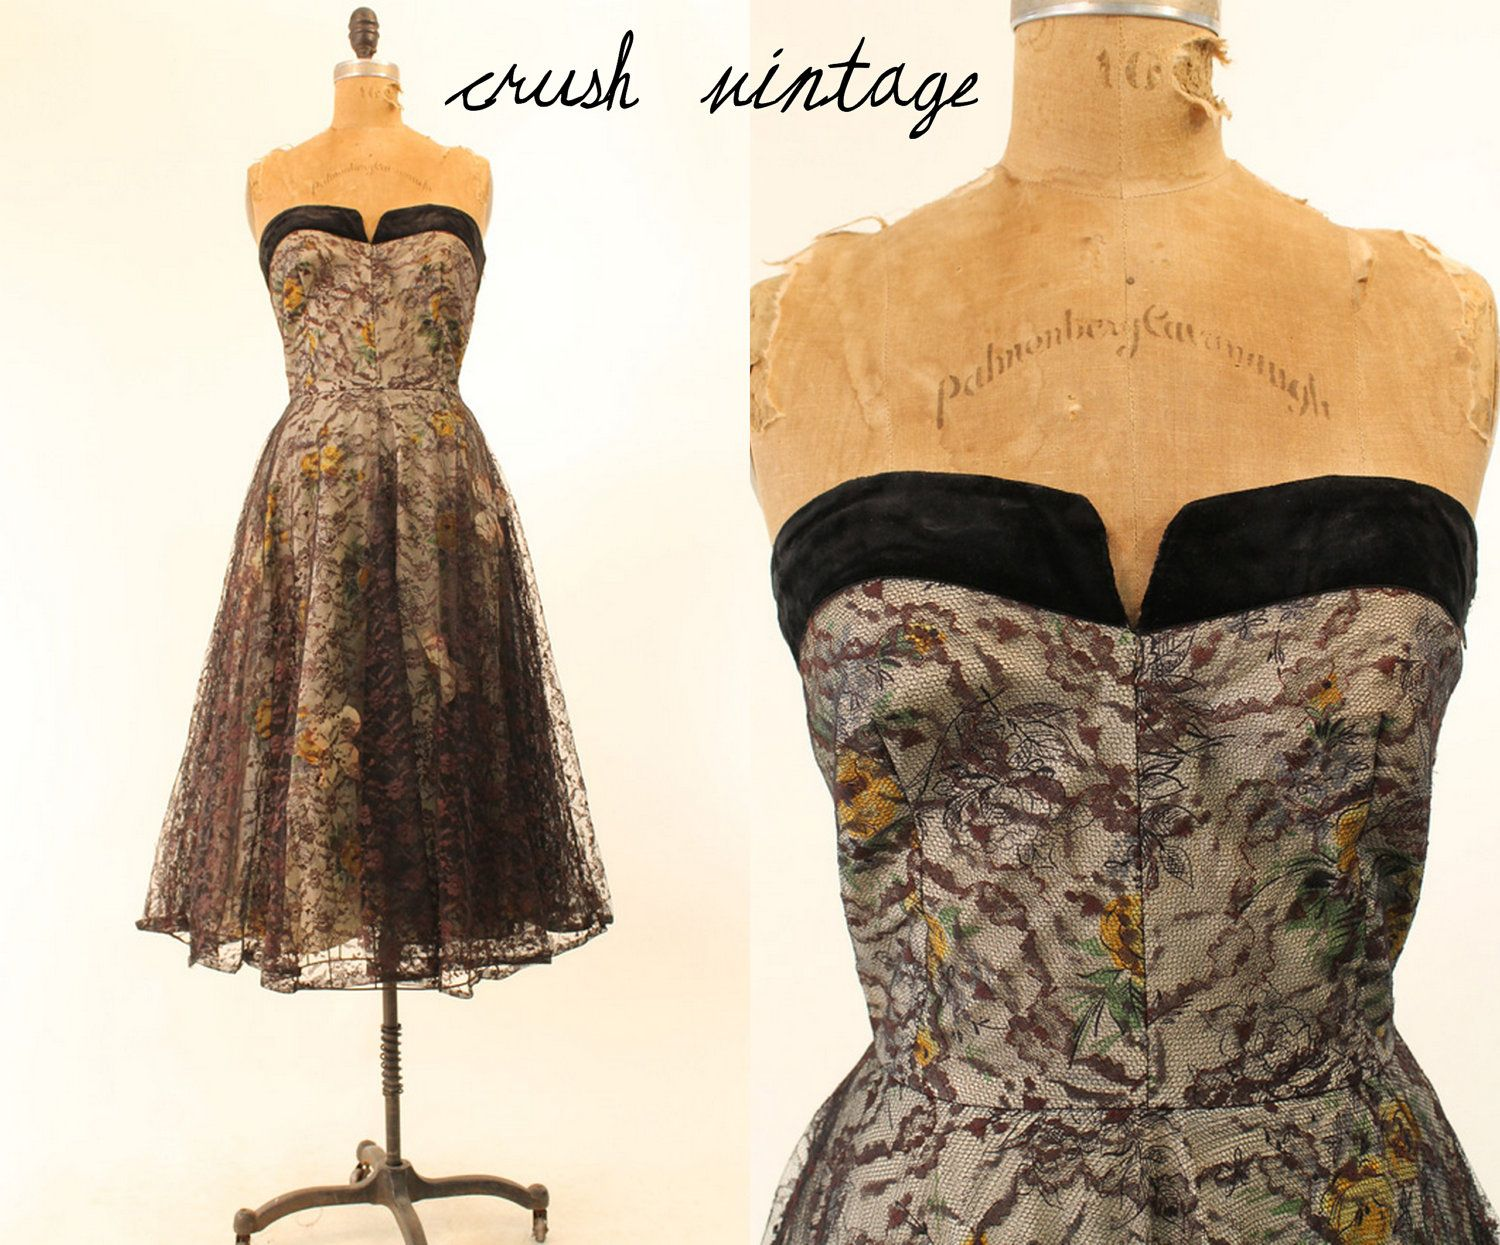 Yellow roses blace lace and velvet us formal dress a posh